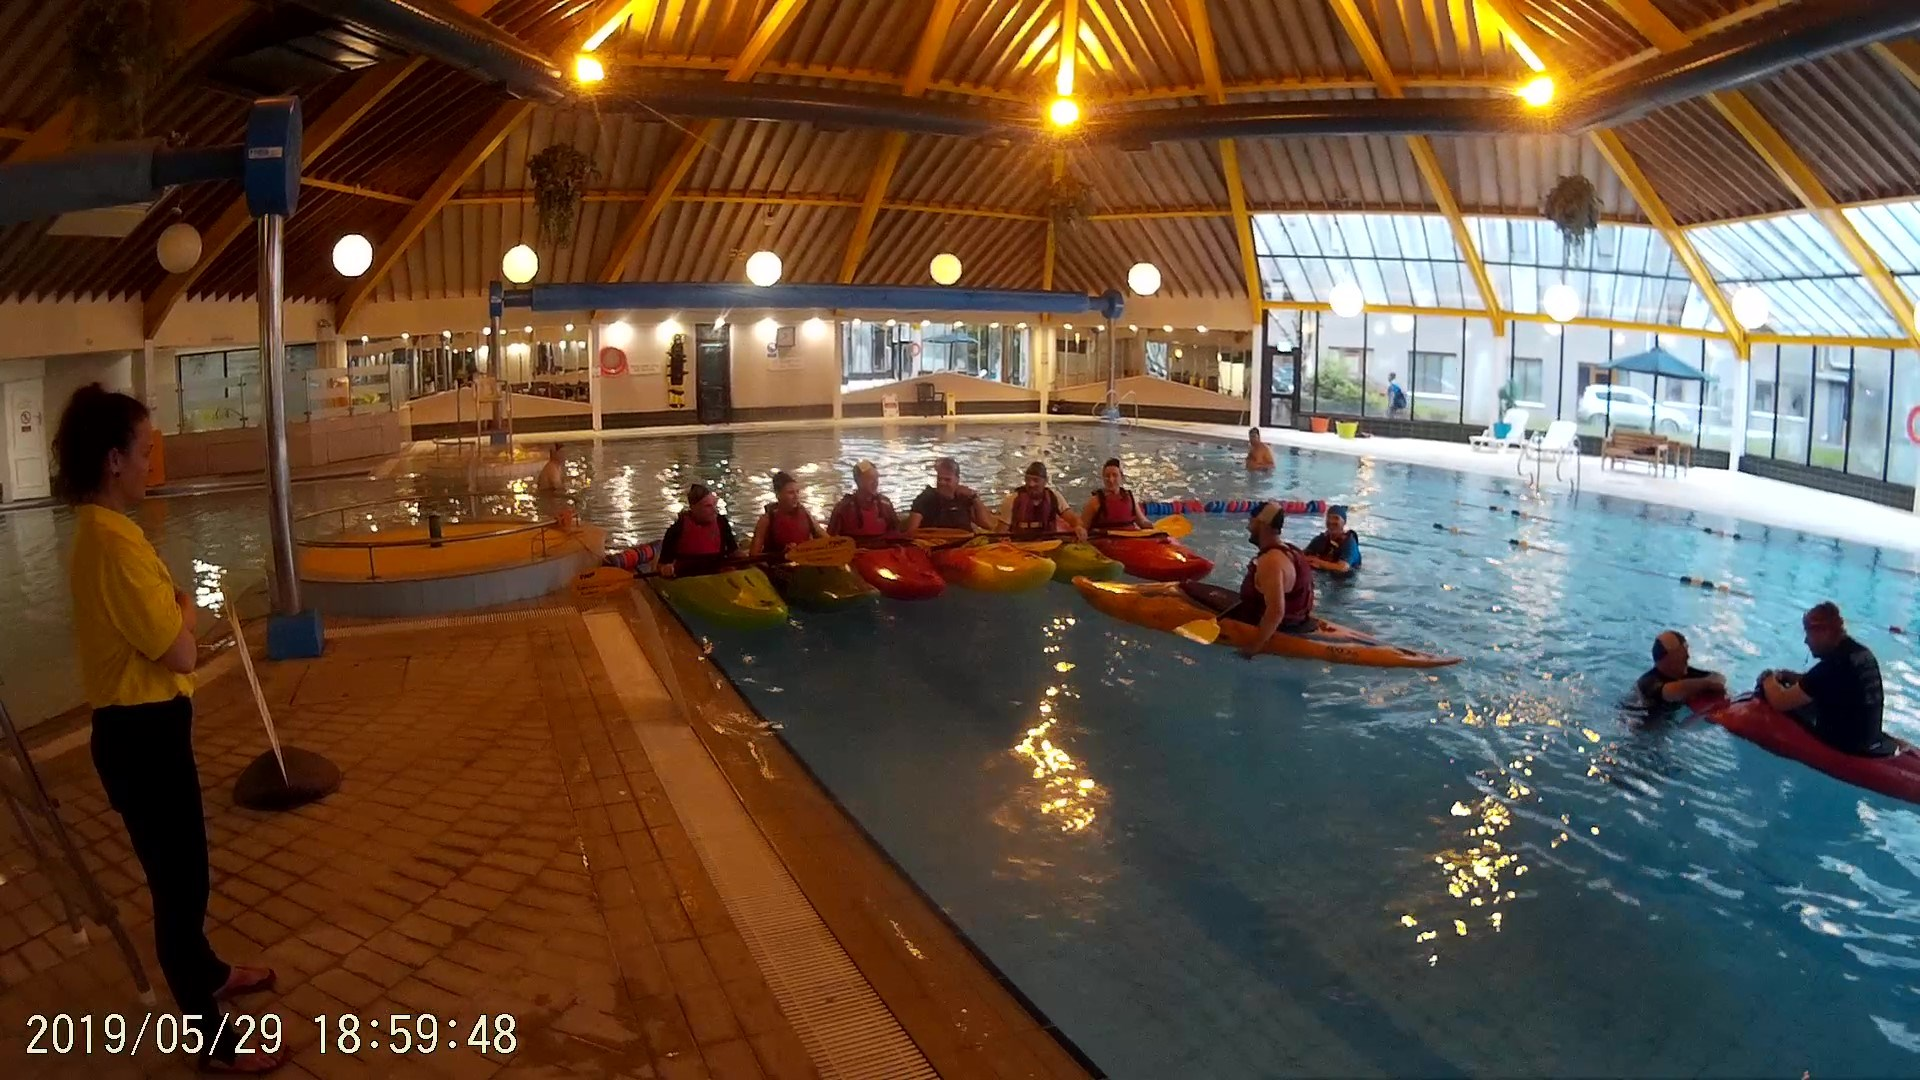 Kerry Canoe Club kayaking in a swimming pool, pool session